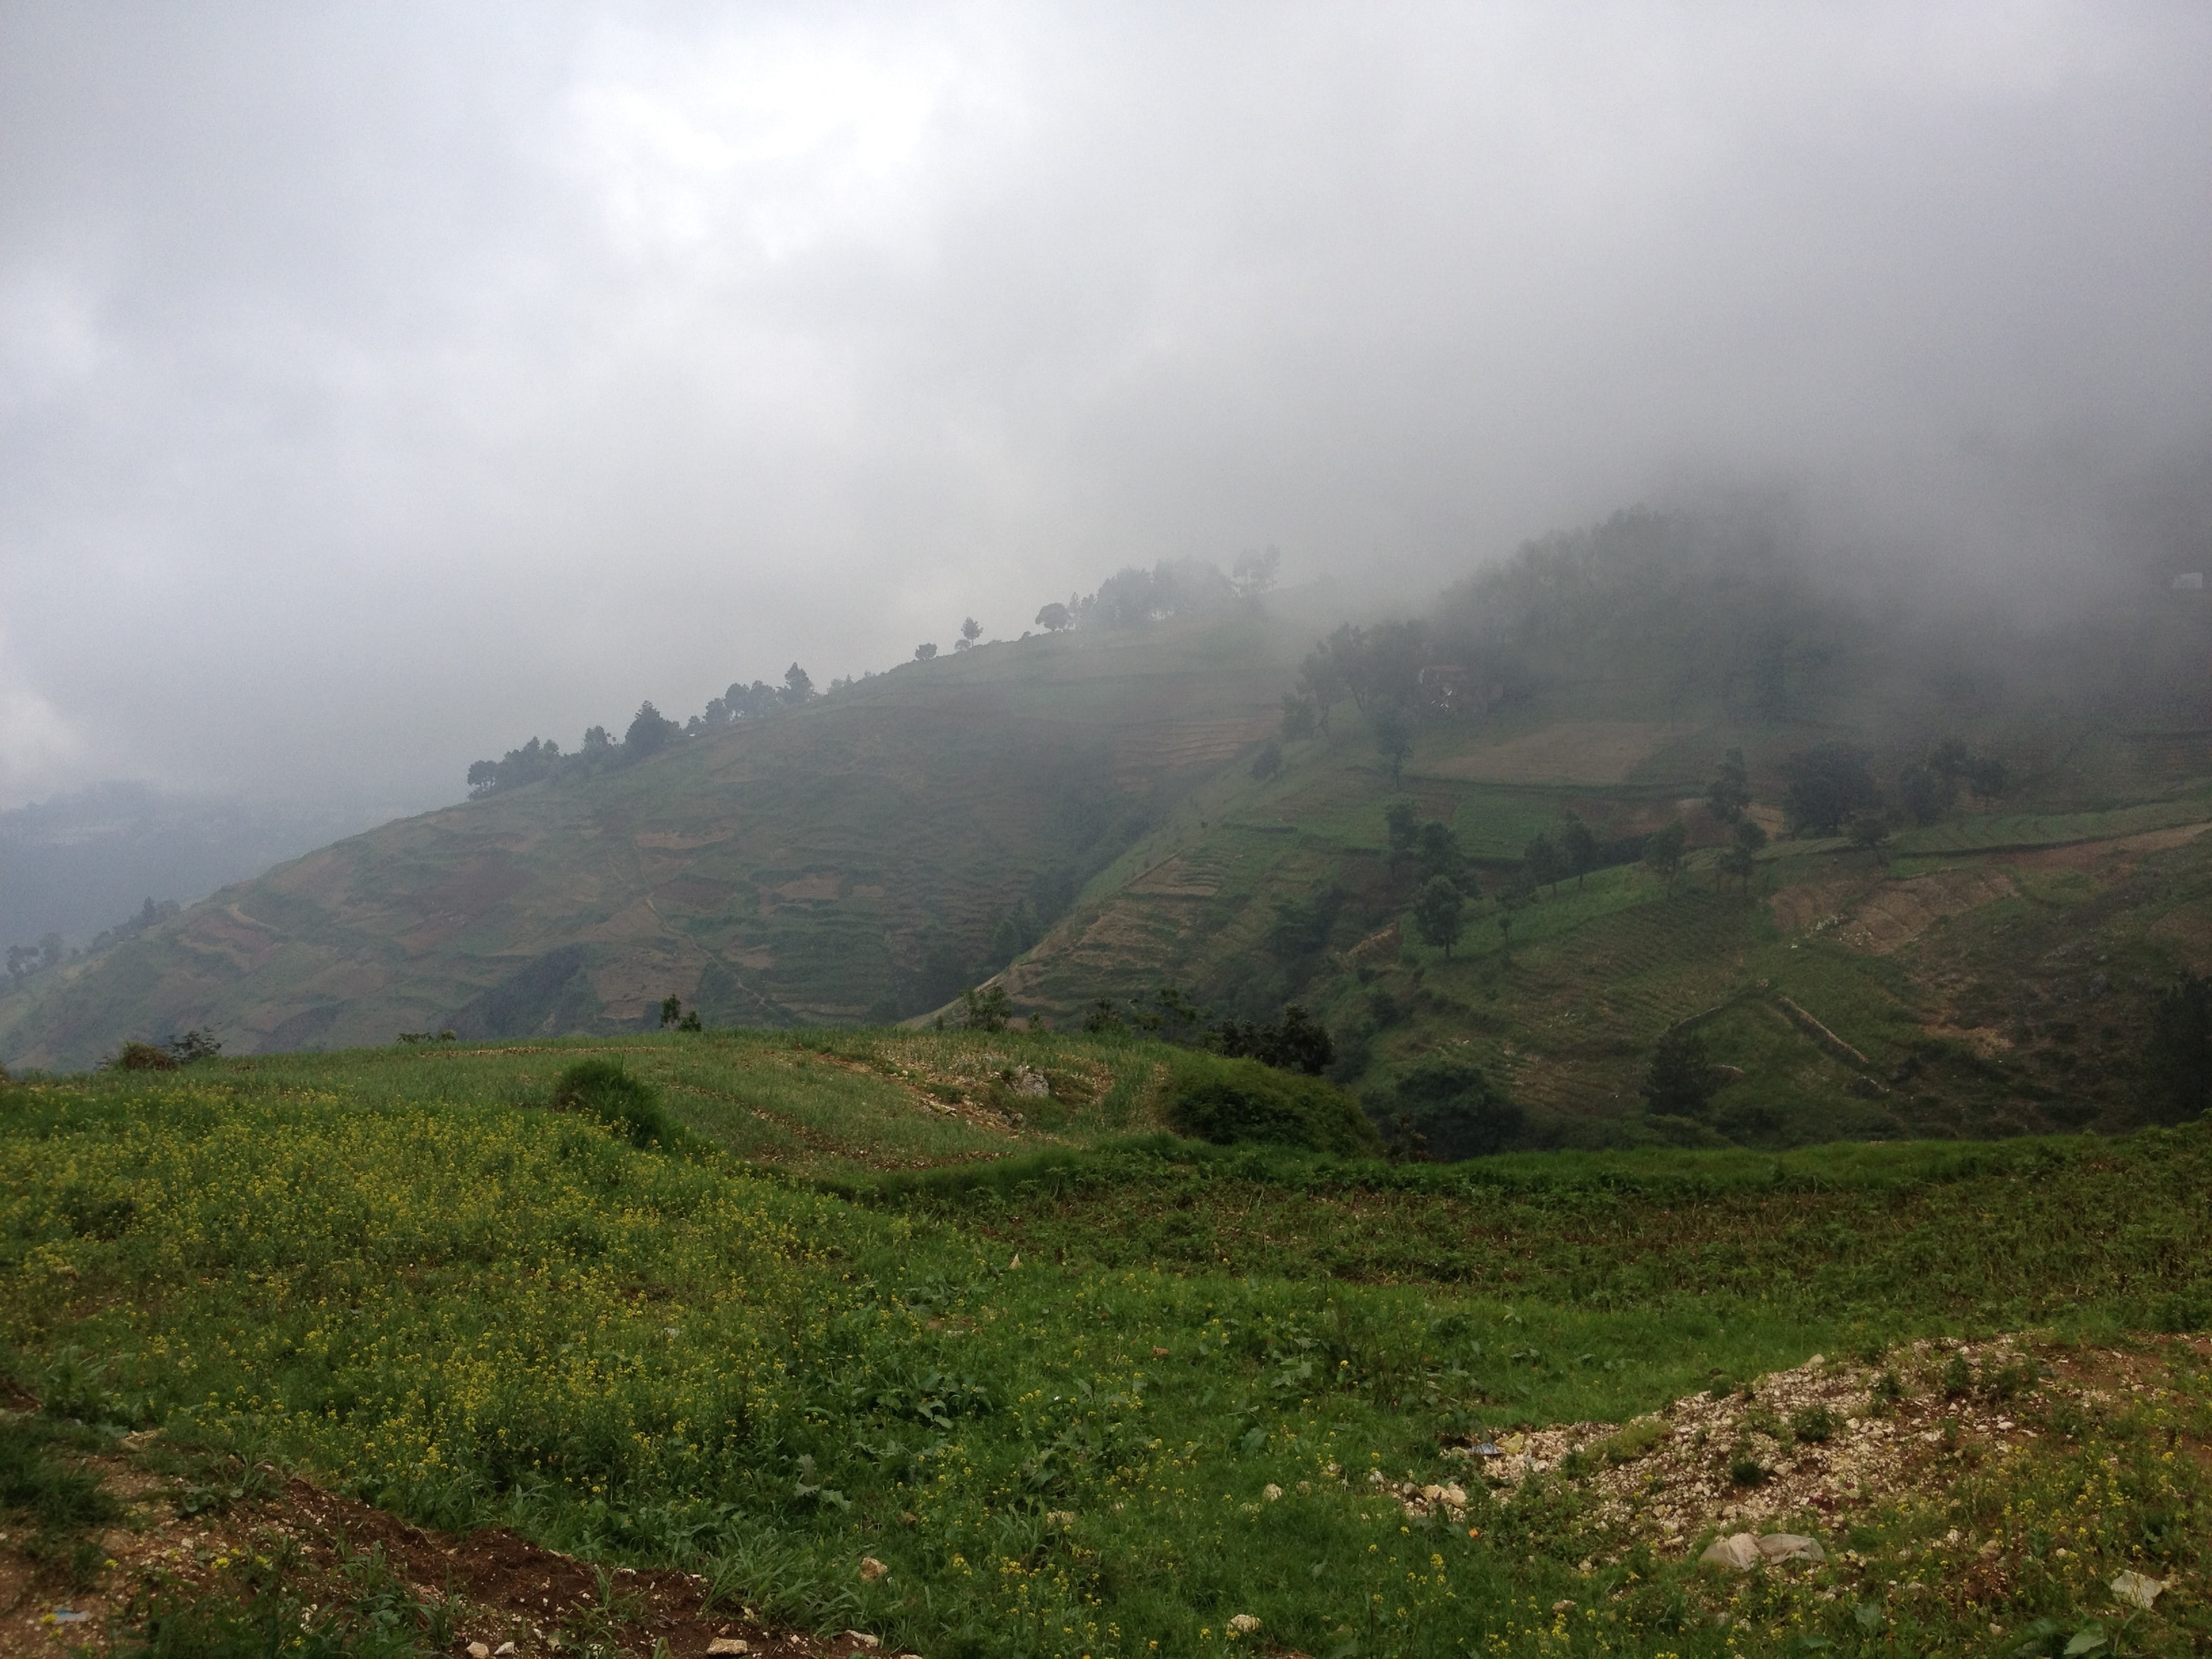 Fog rolling down from hills covered with green and brown vegetation